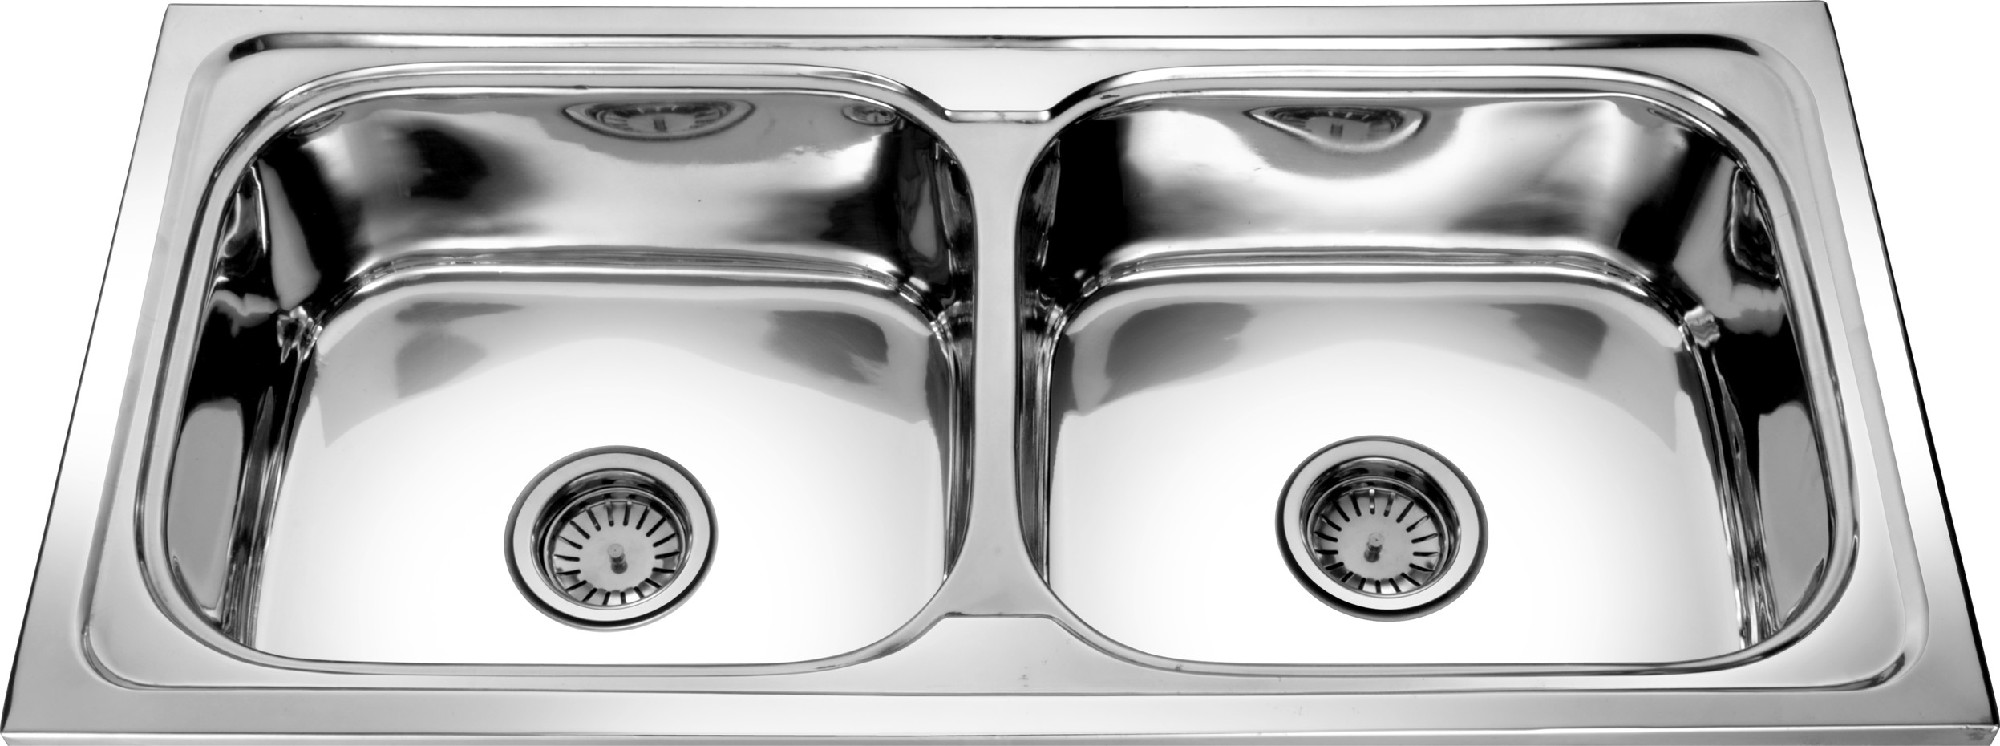 kitchen sinks double - zitzat